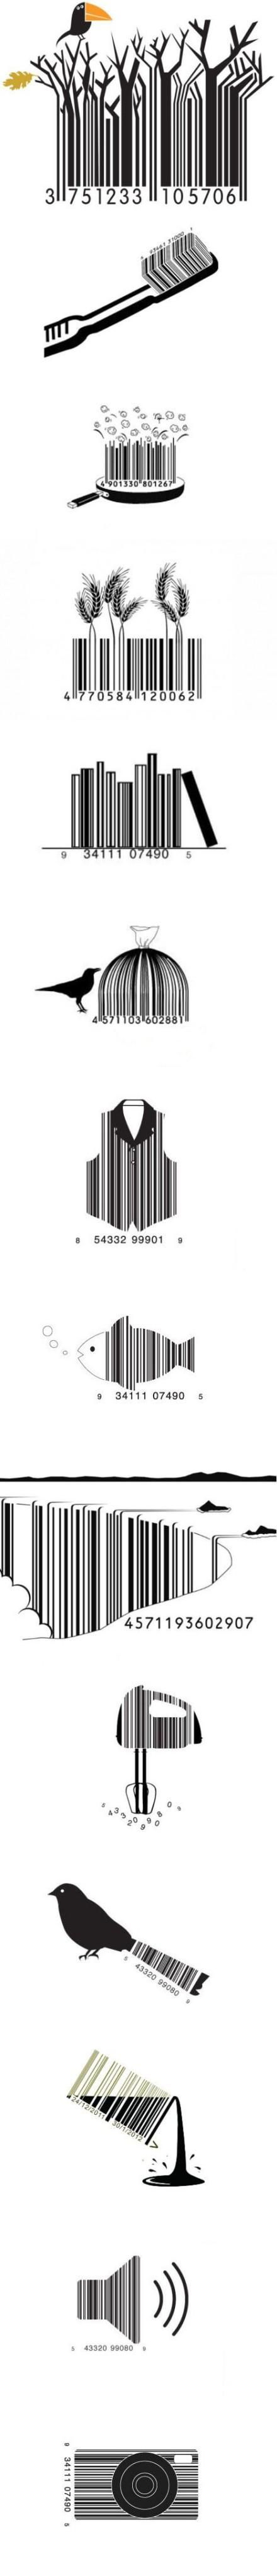 Designing with bar codes...